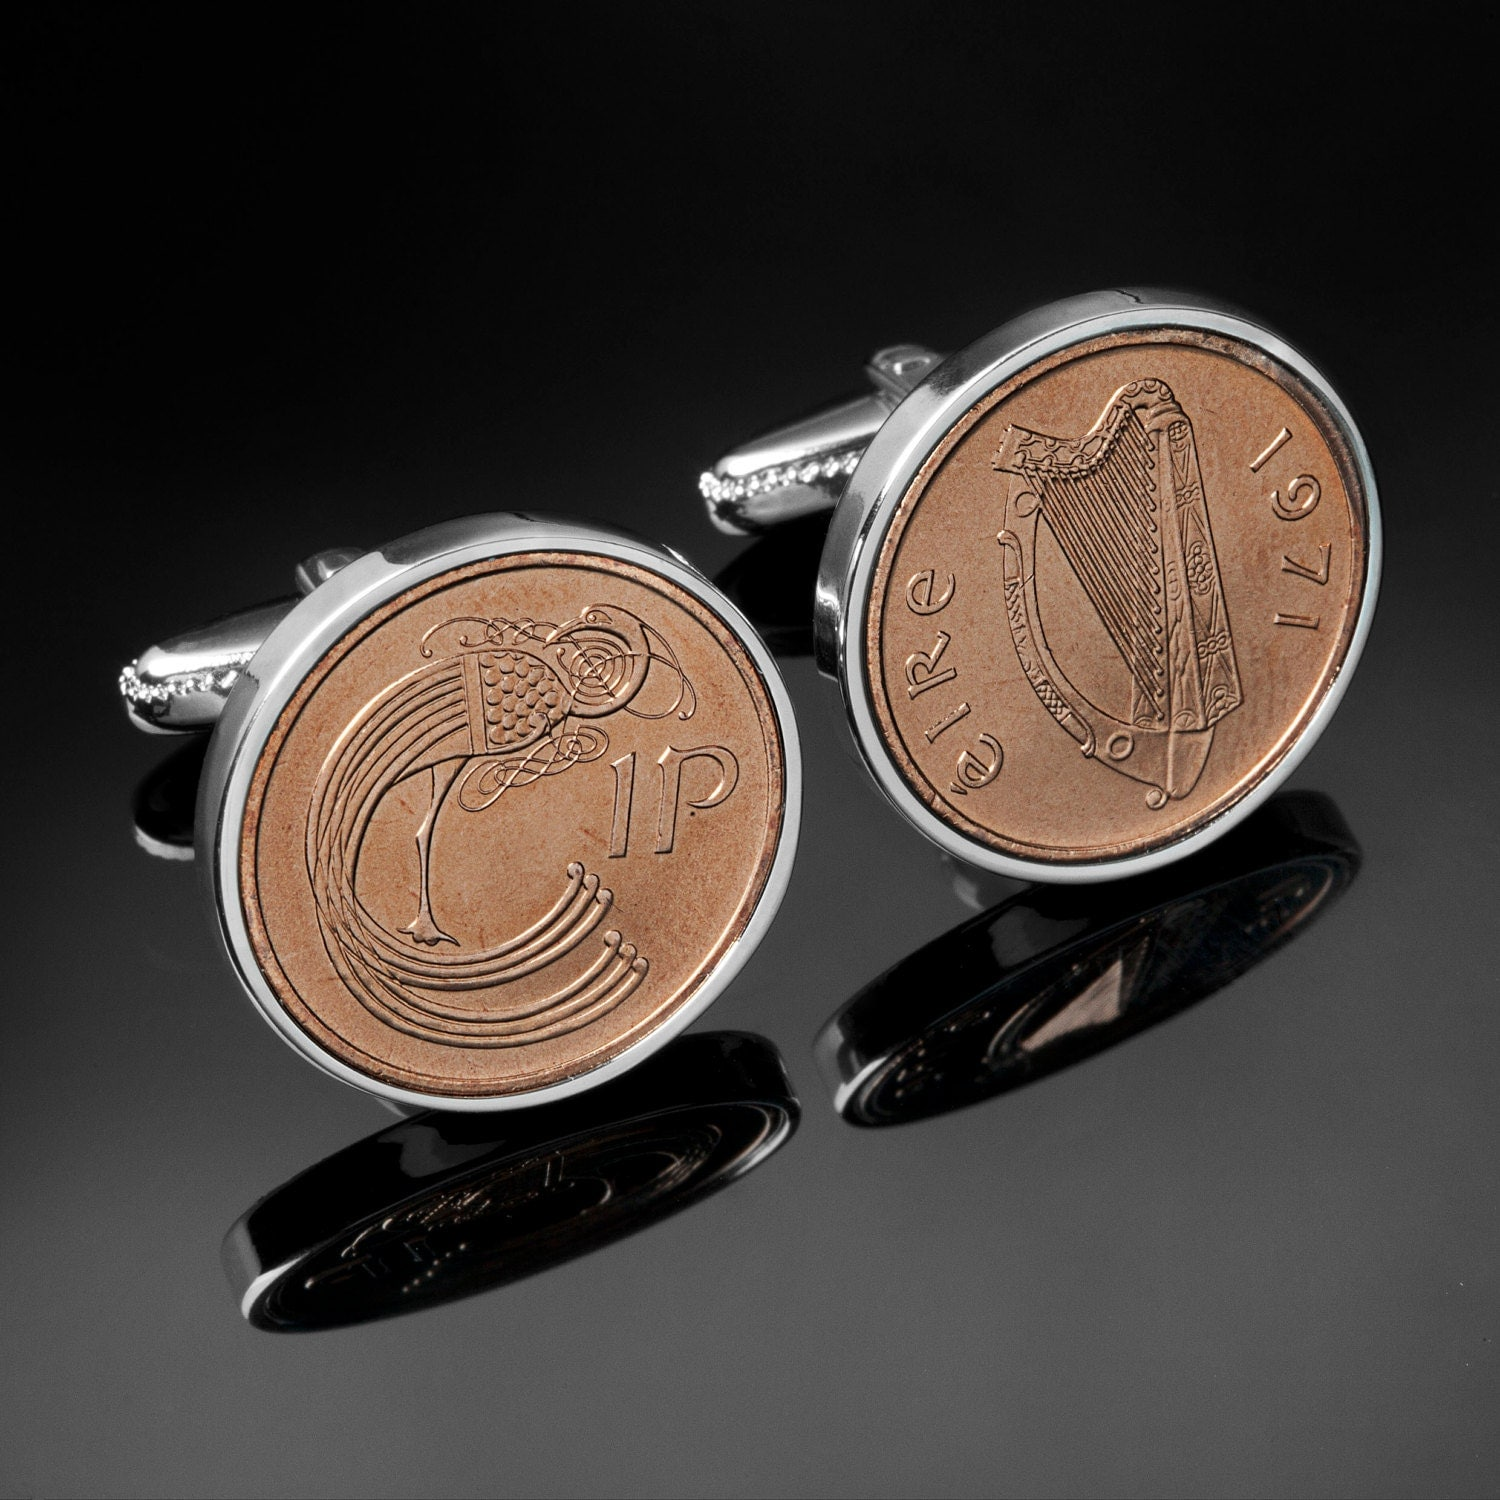 Copper Wedding Gifts: Copper Anniversary Gift For Men. 7 Year Copper Wedding Gift